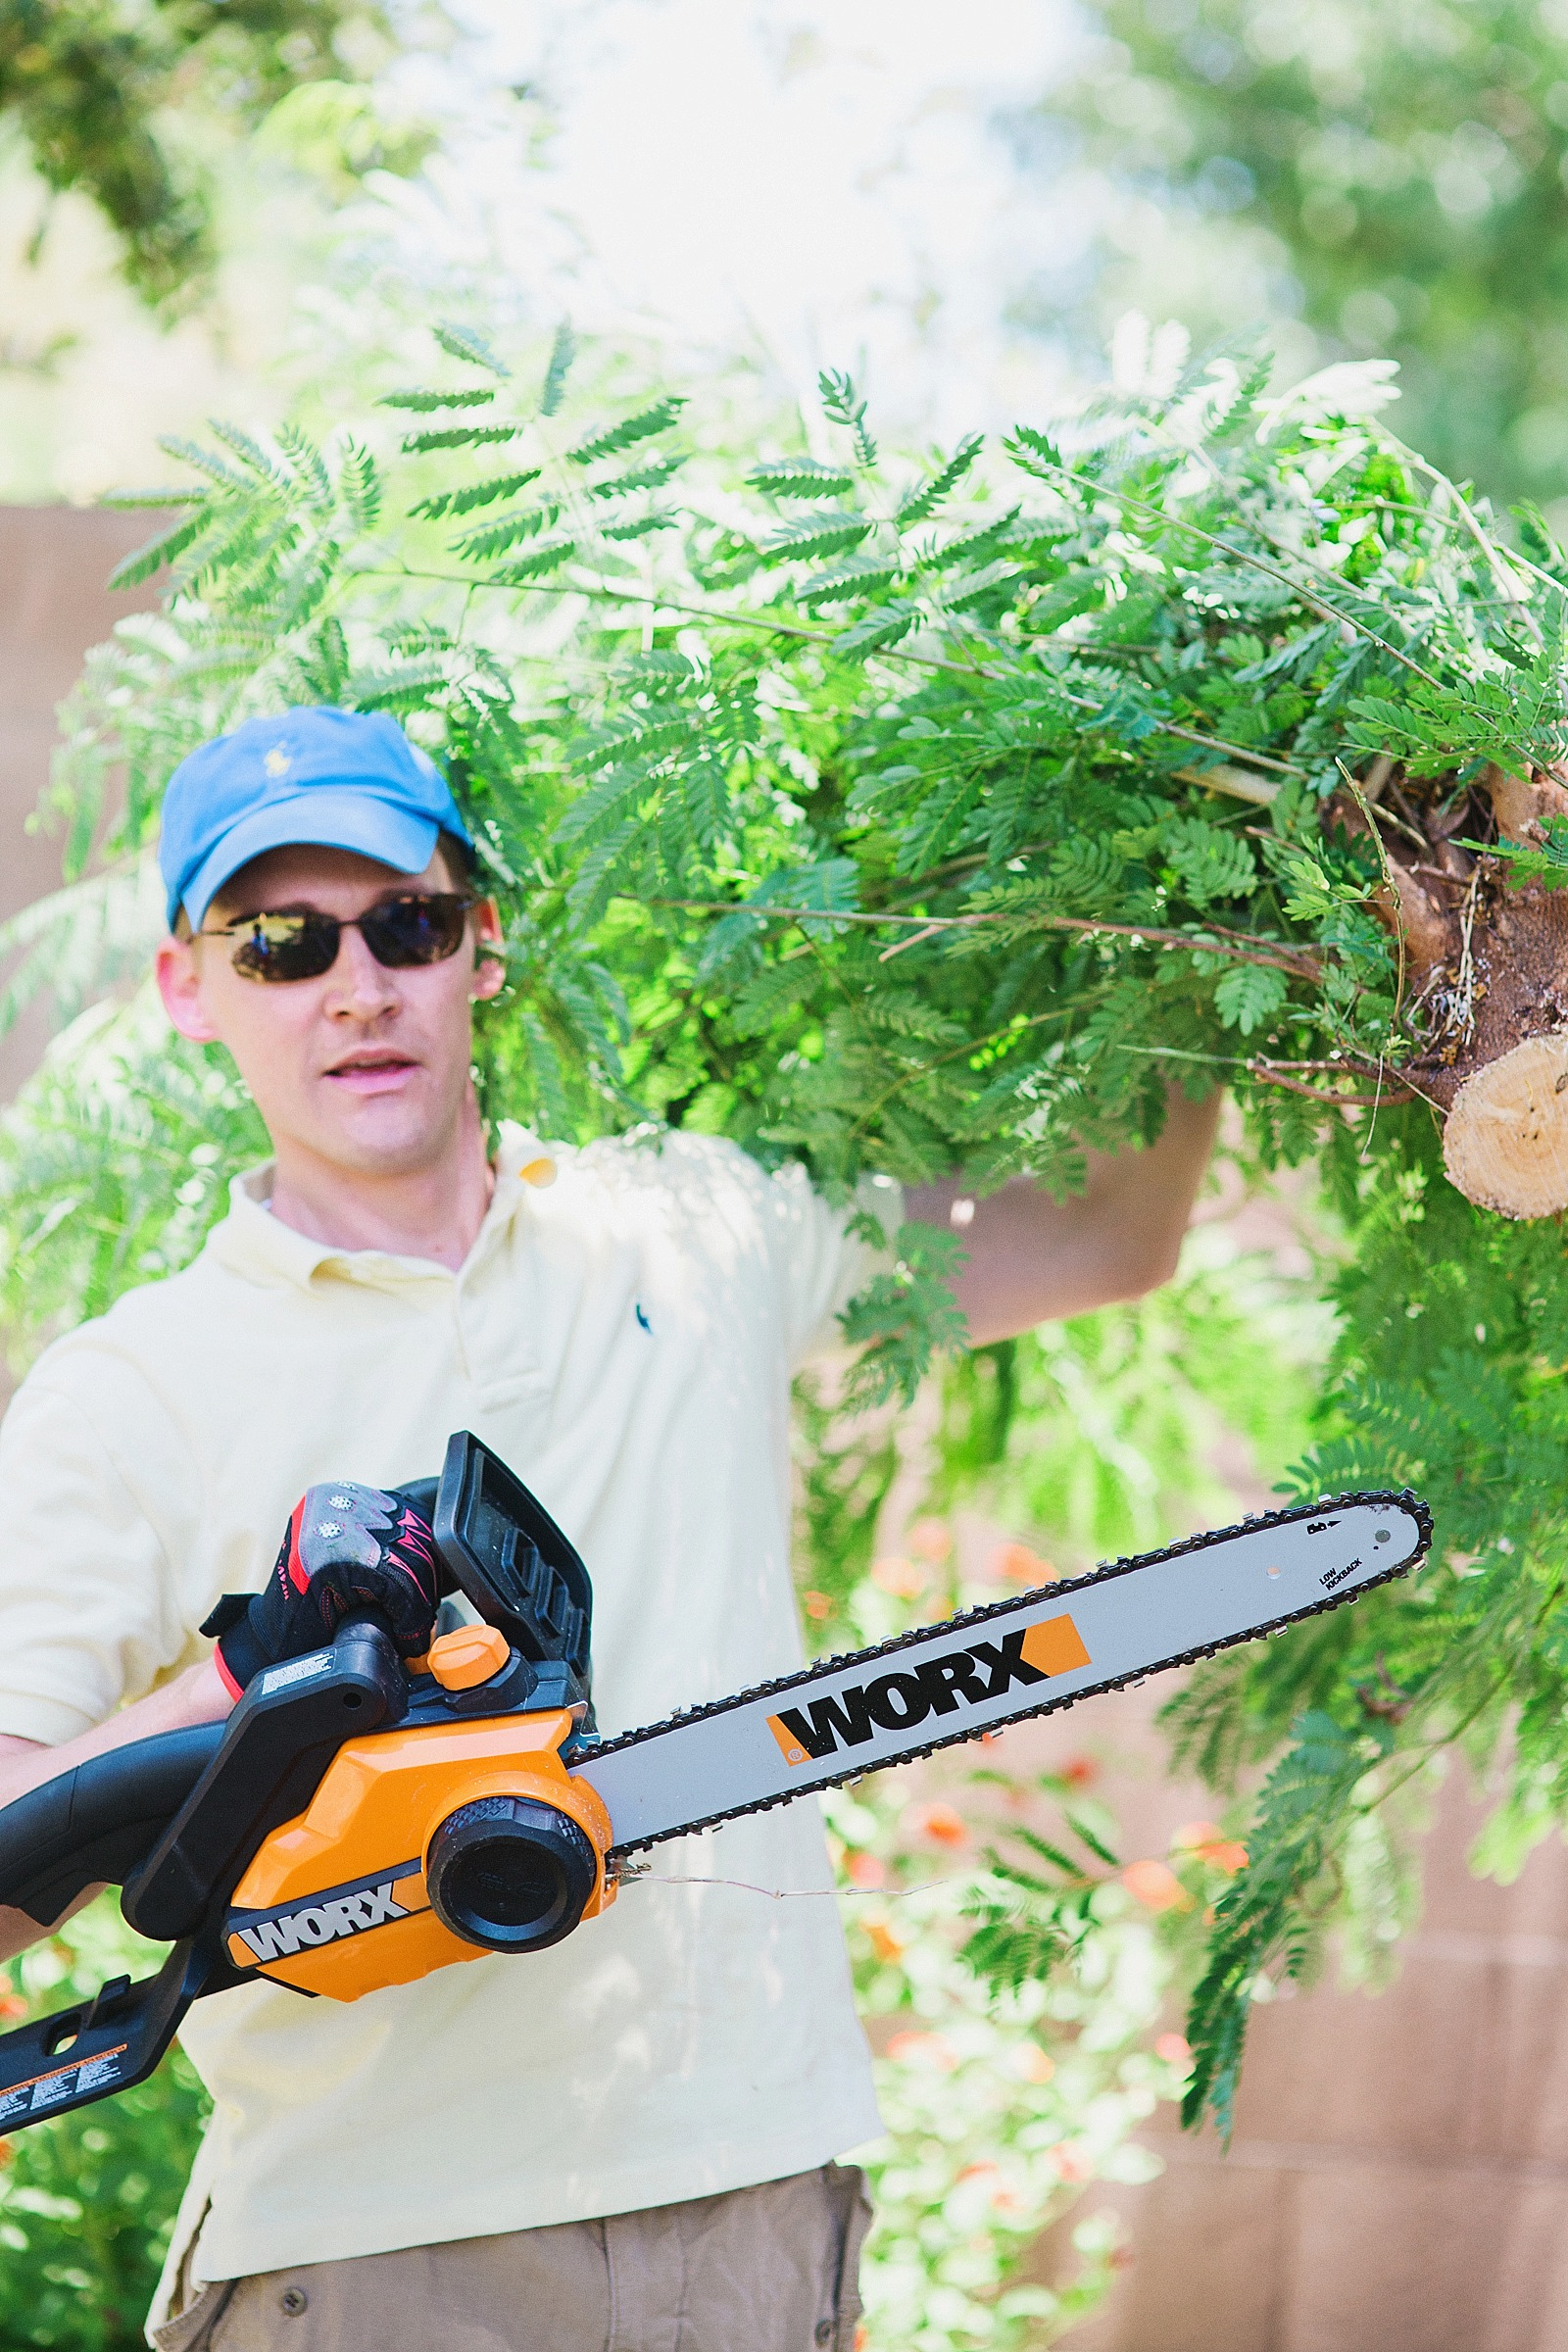 worx-chain-saw-review-gardening-blogger-home-diana-elizabeth-119a